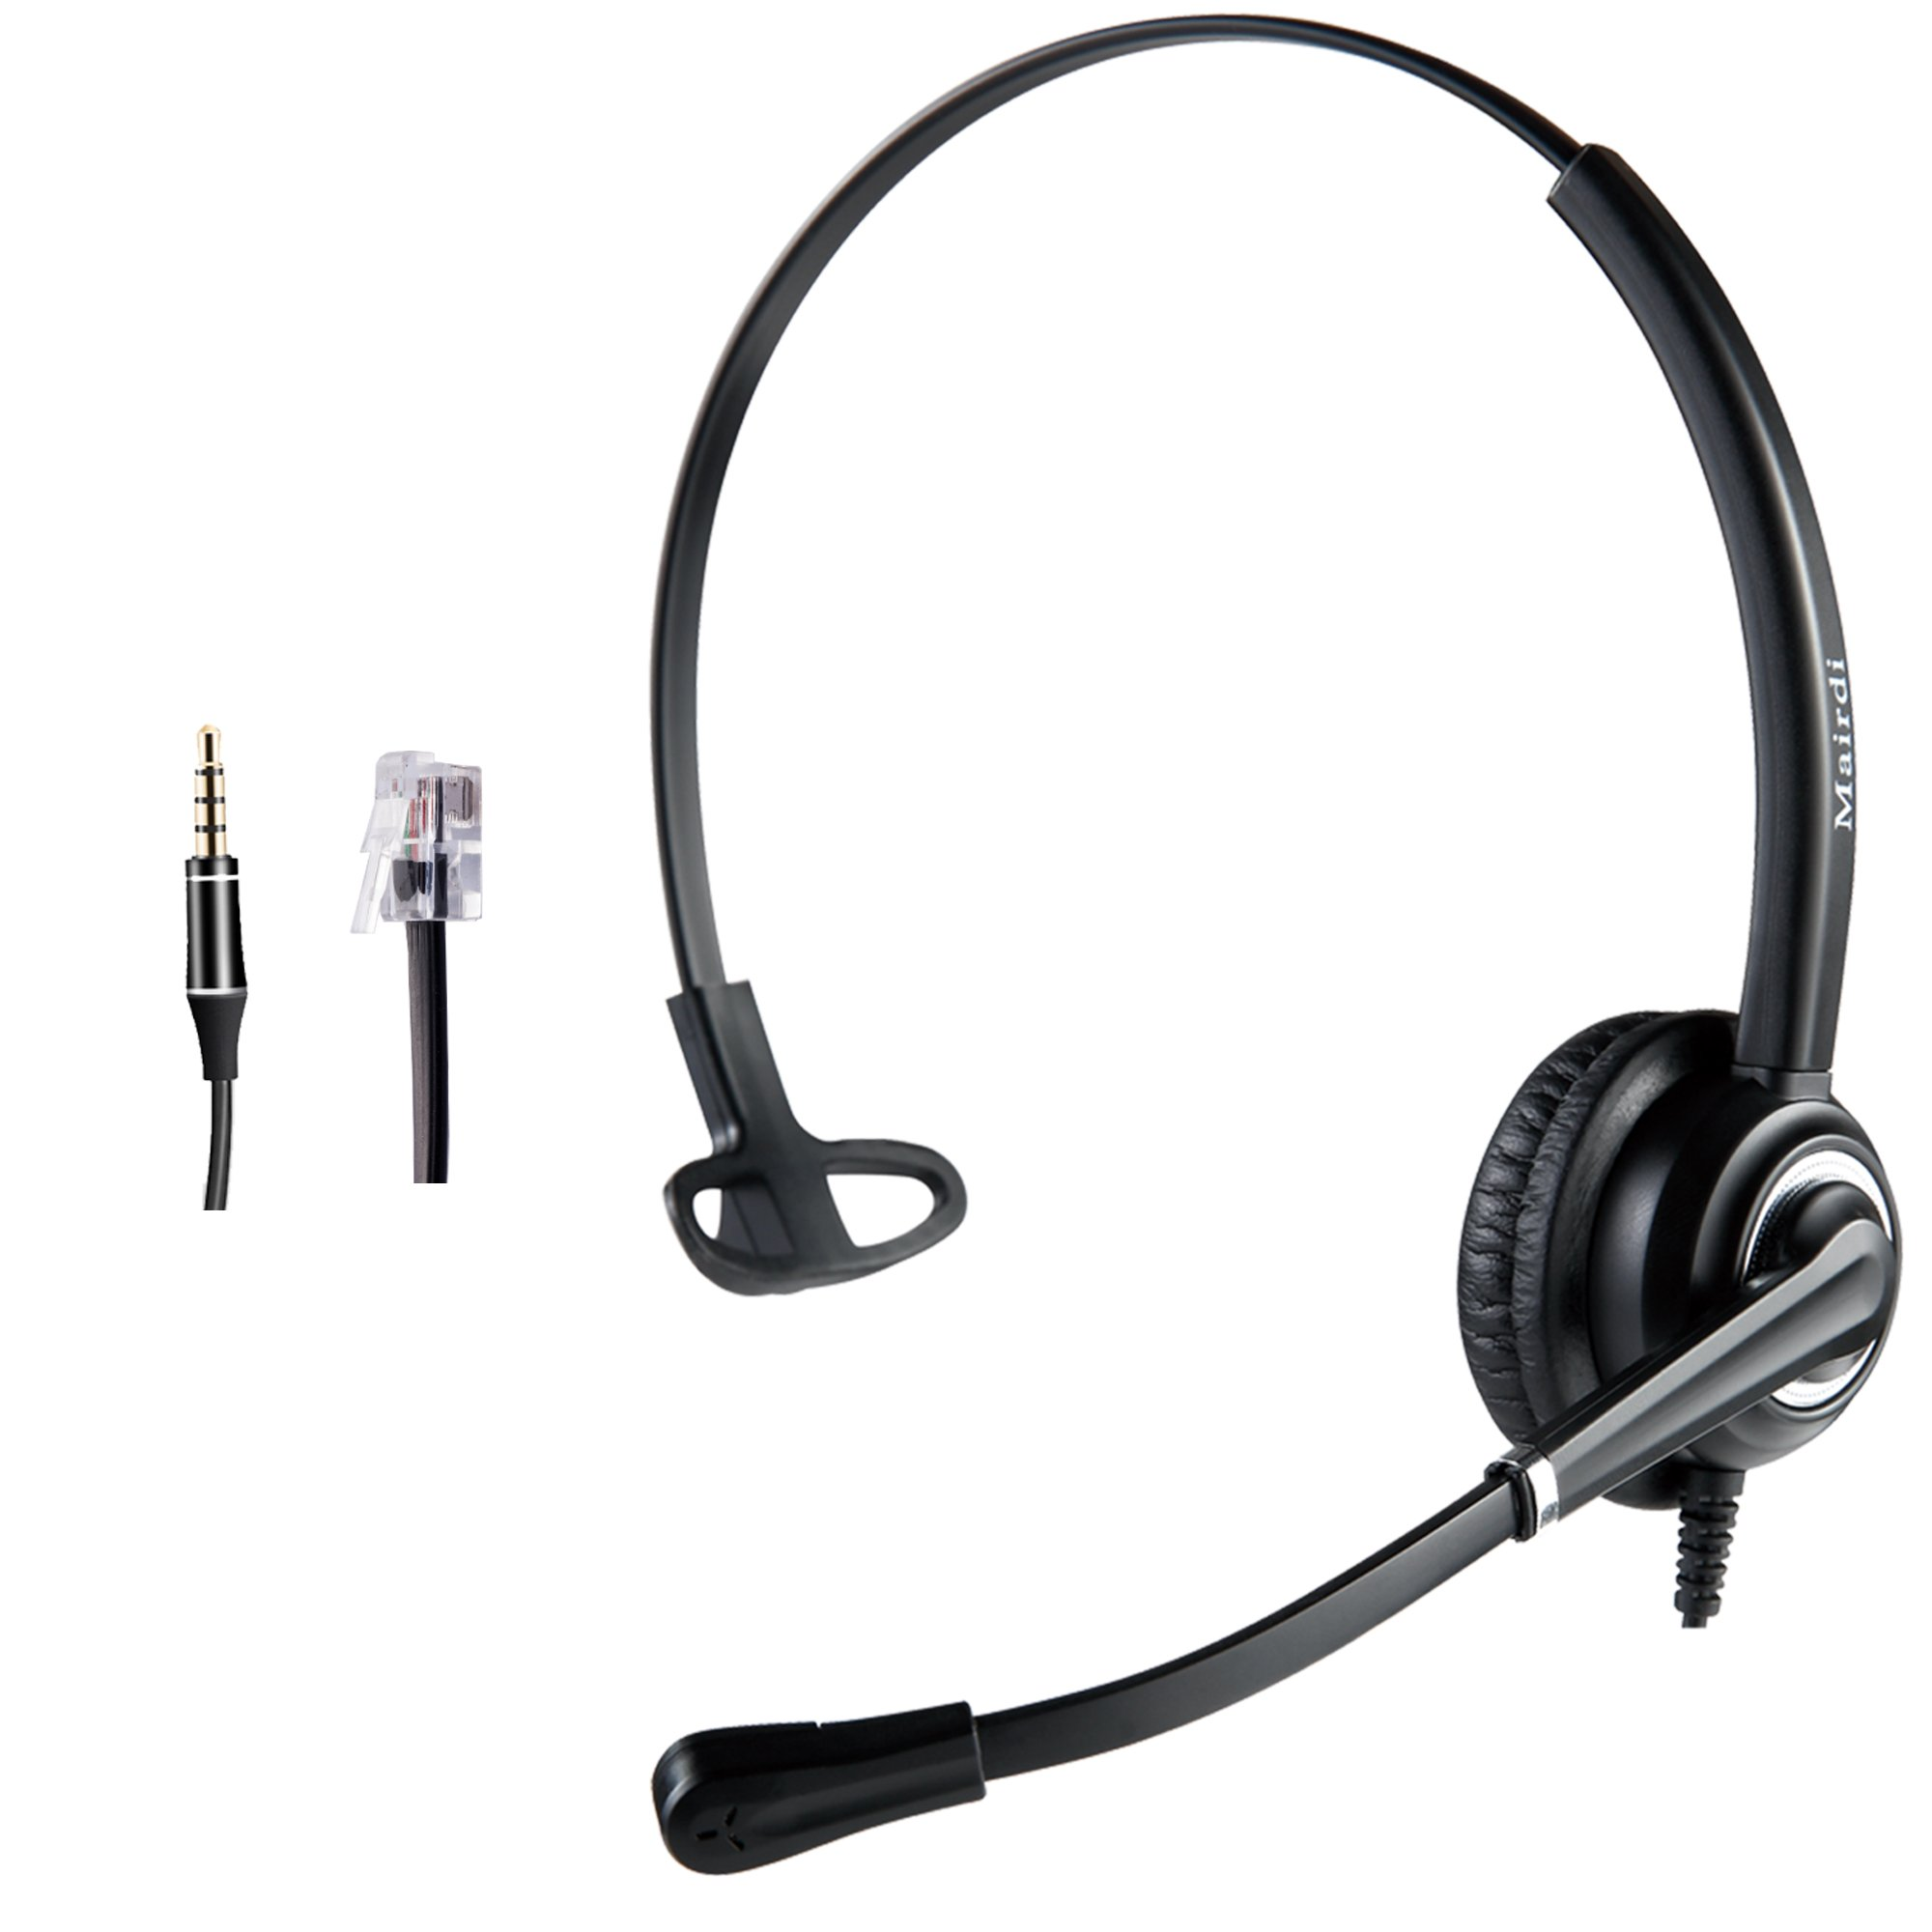 Cisco Headset Telephone Headset RJ9 with Noise Cancelling Microphone Jabra Compatible Plus Extra 3.5mm Connector by MAIRDI